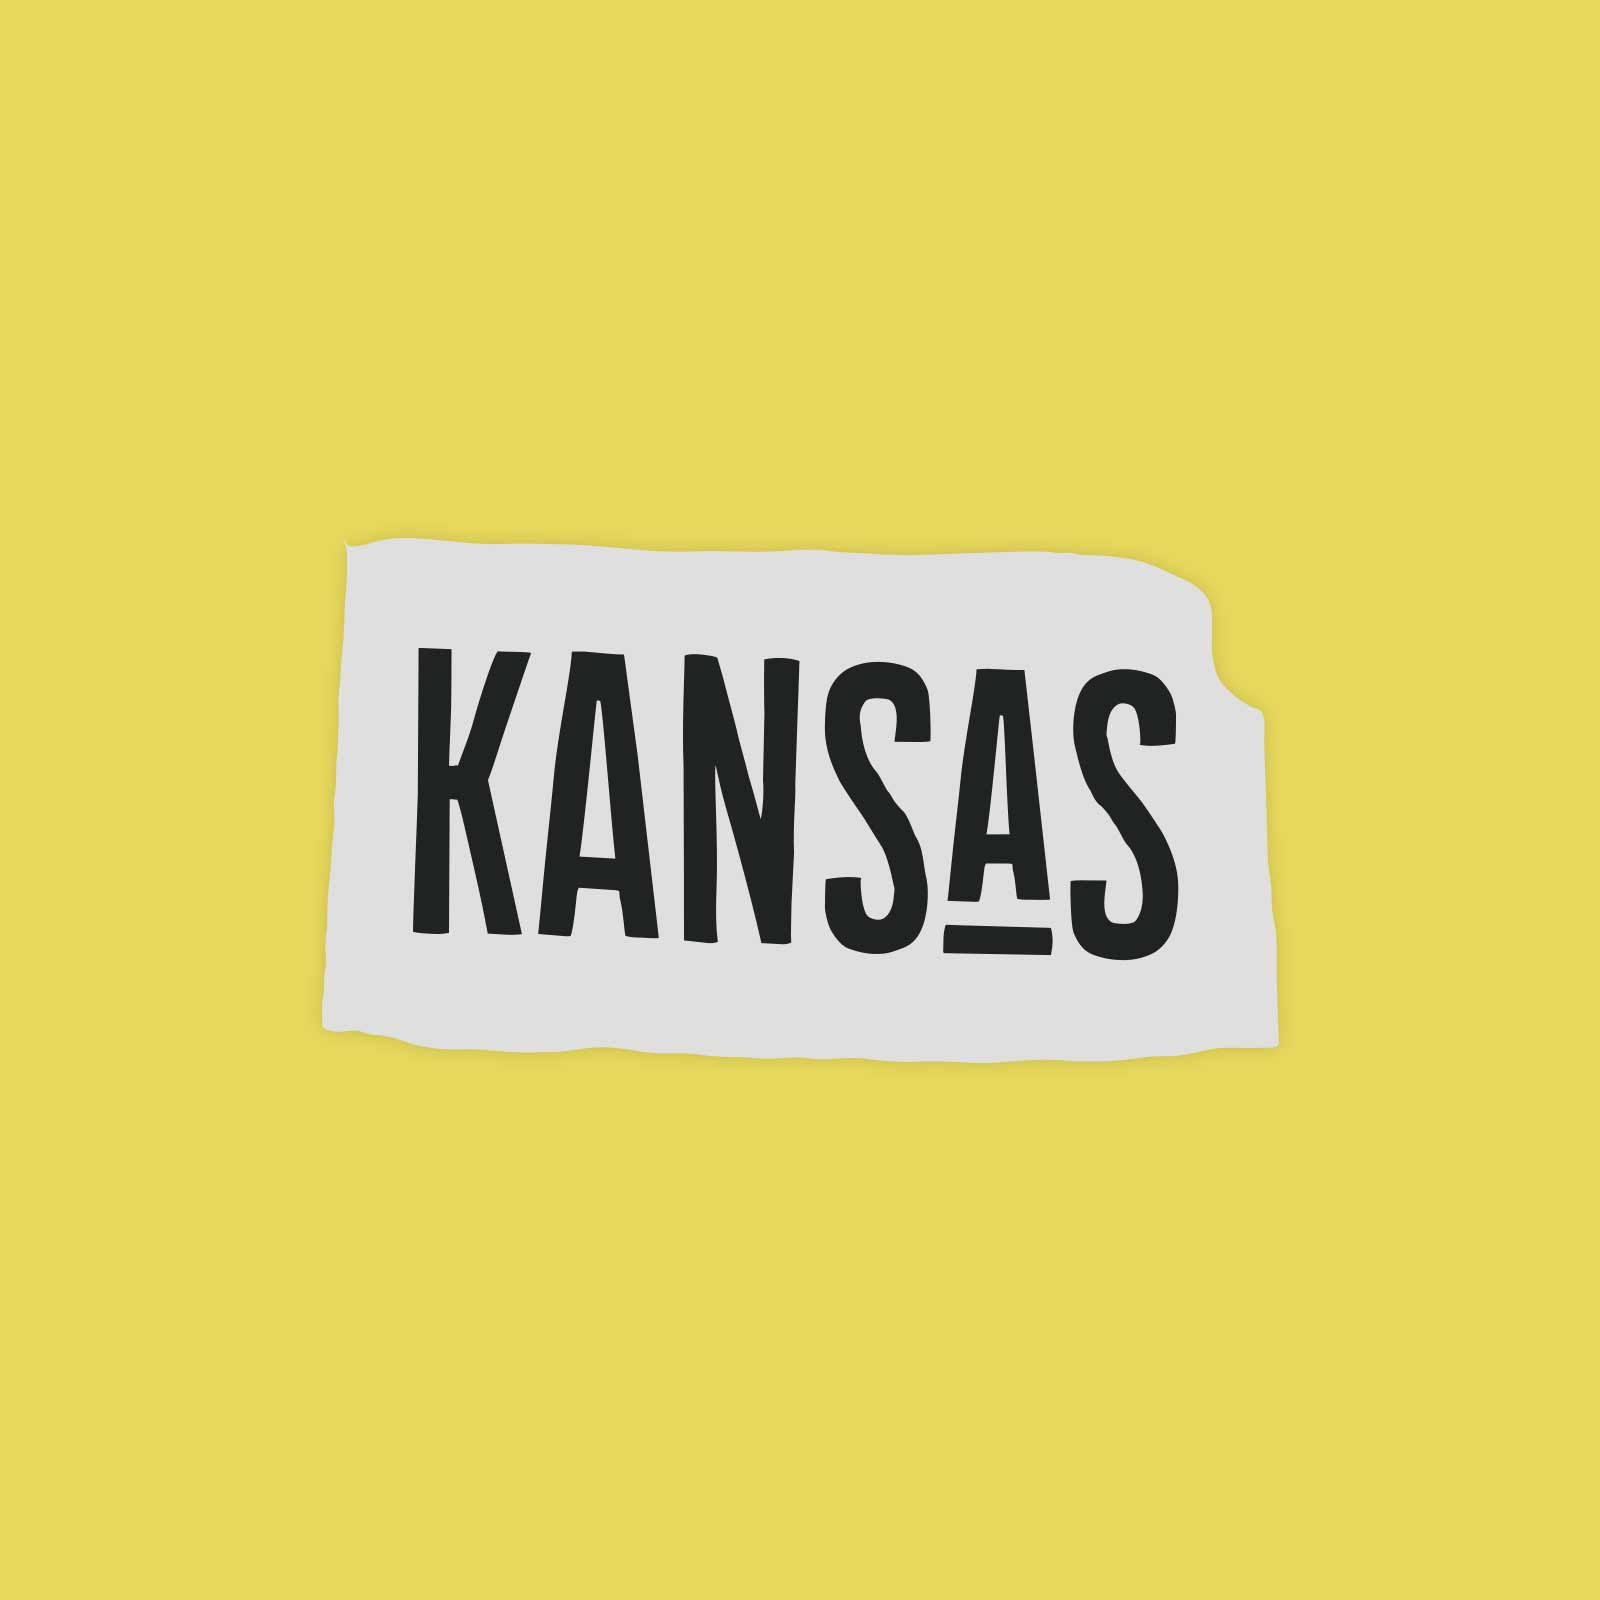 How to start a business in Kansas